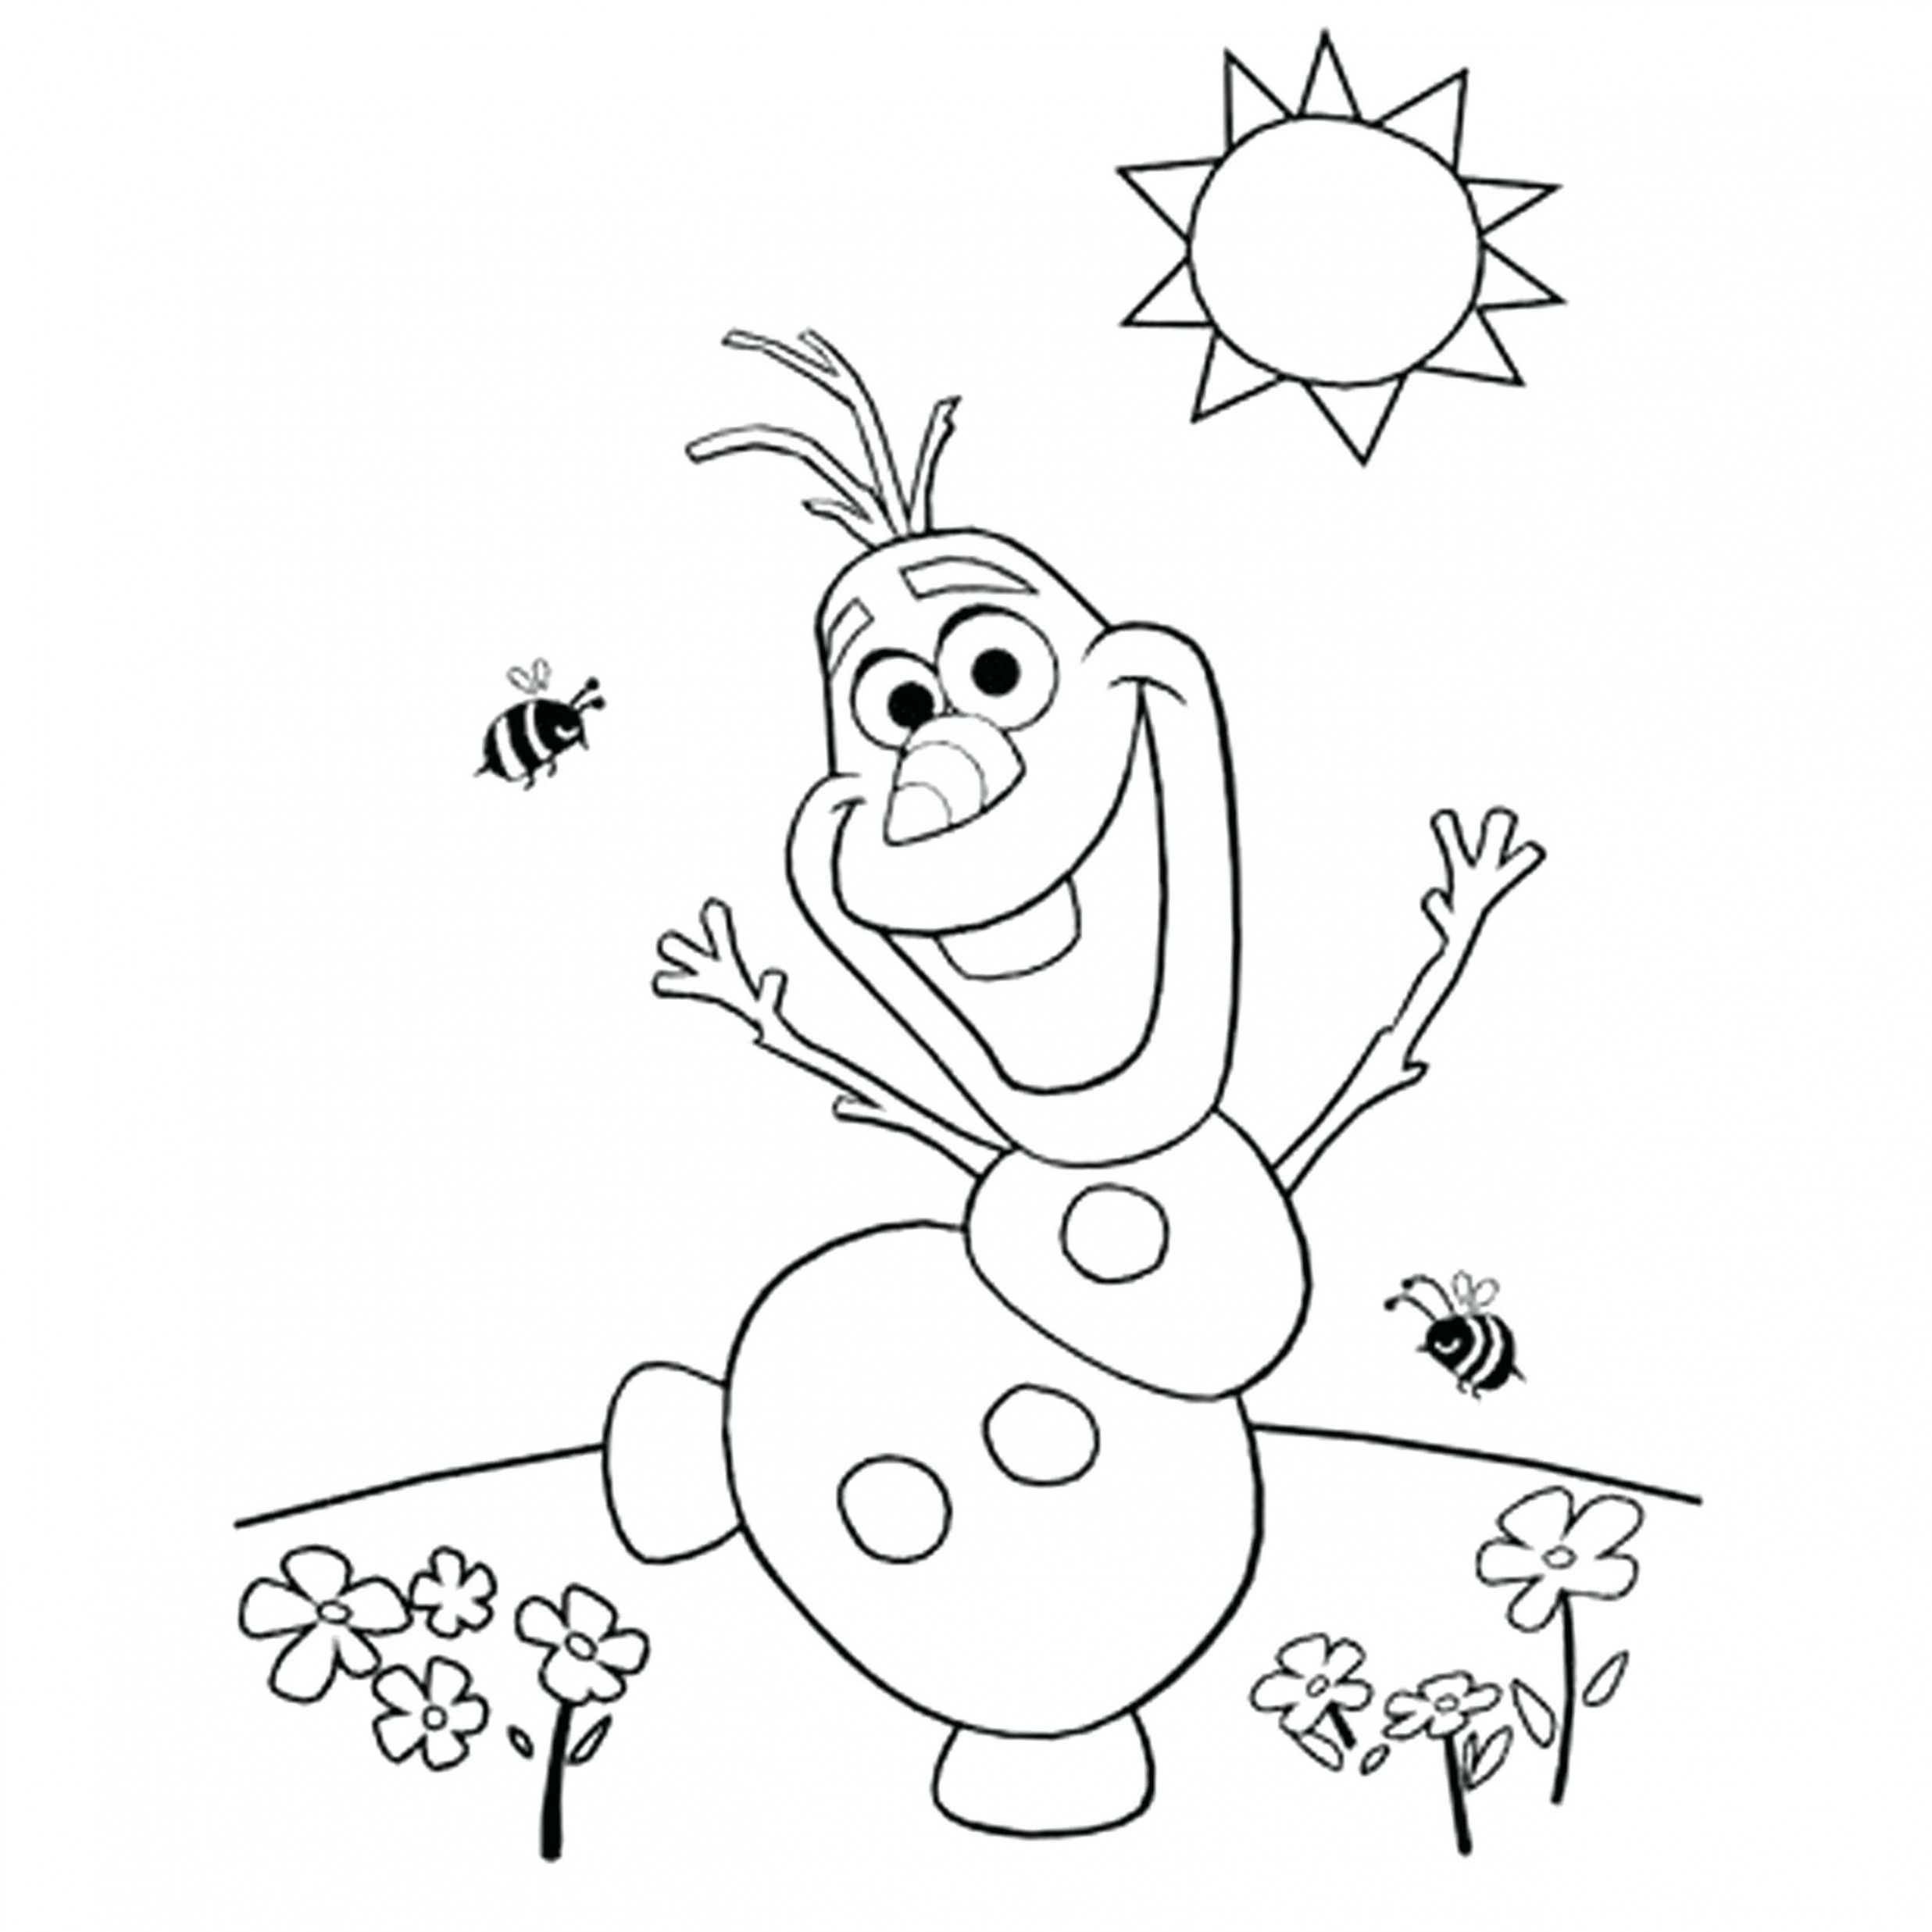 7 Olaf Frozen Coloring Pages Elsa Coloring Pages Frozen Coloring Frozen Coloring Pages